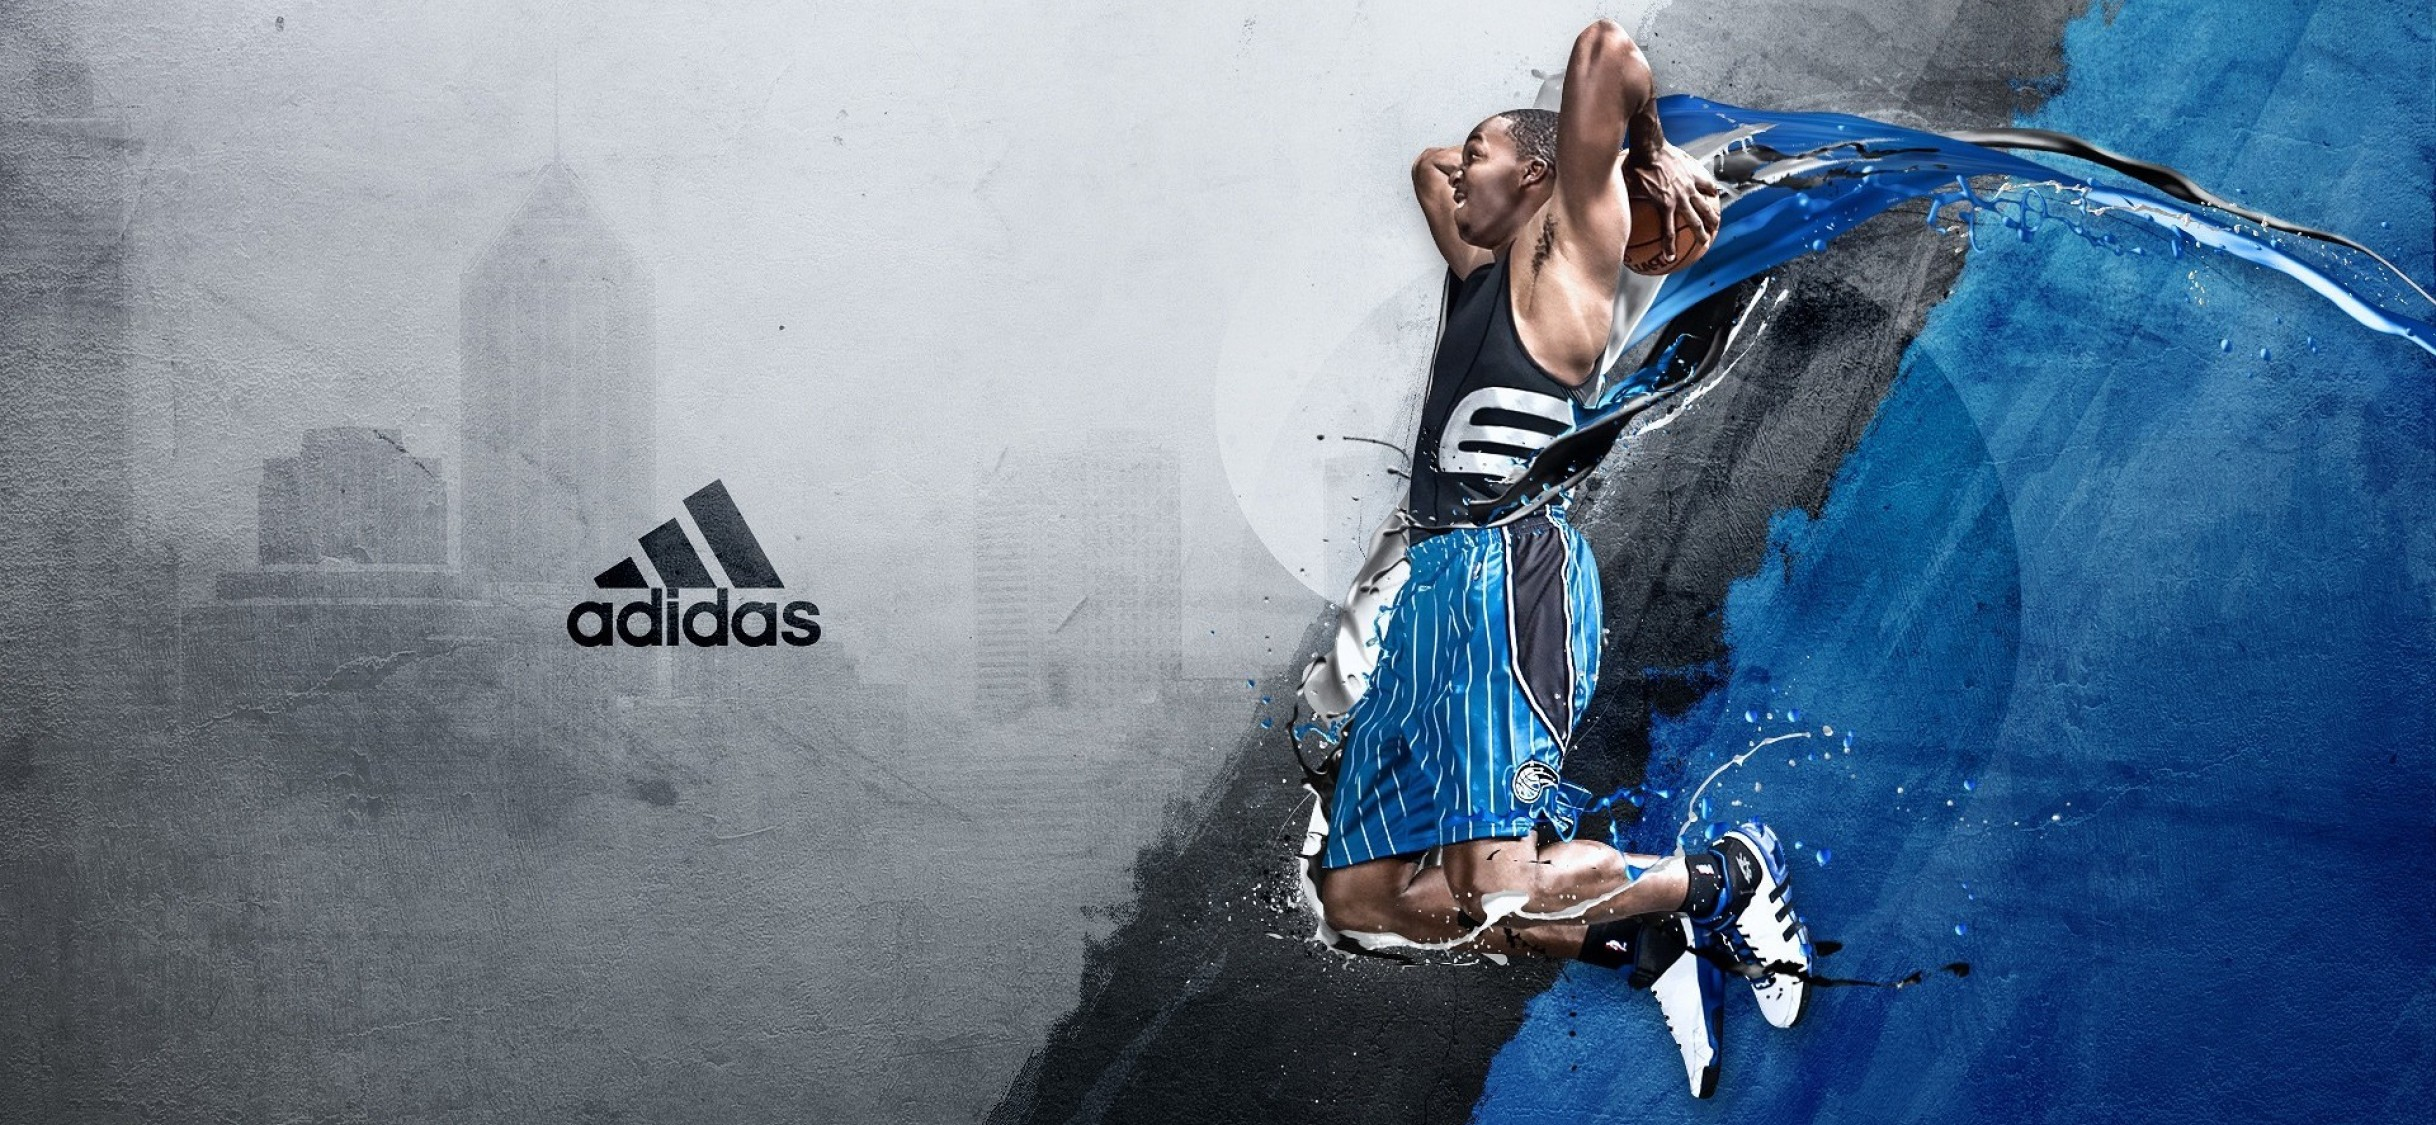 Free Cool Basketball Background Wallpaper For Desktop And